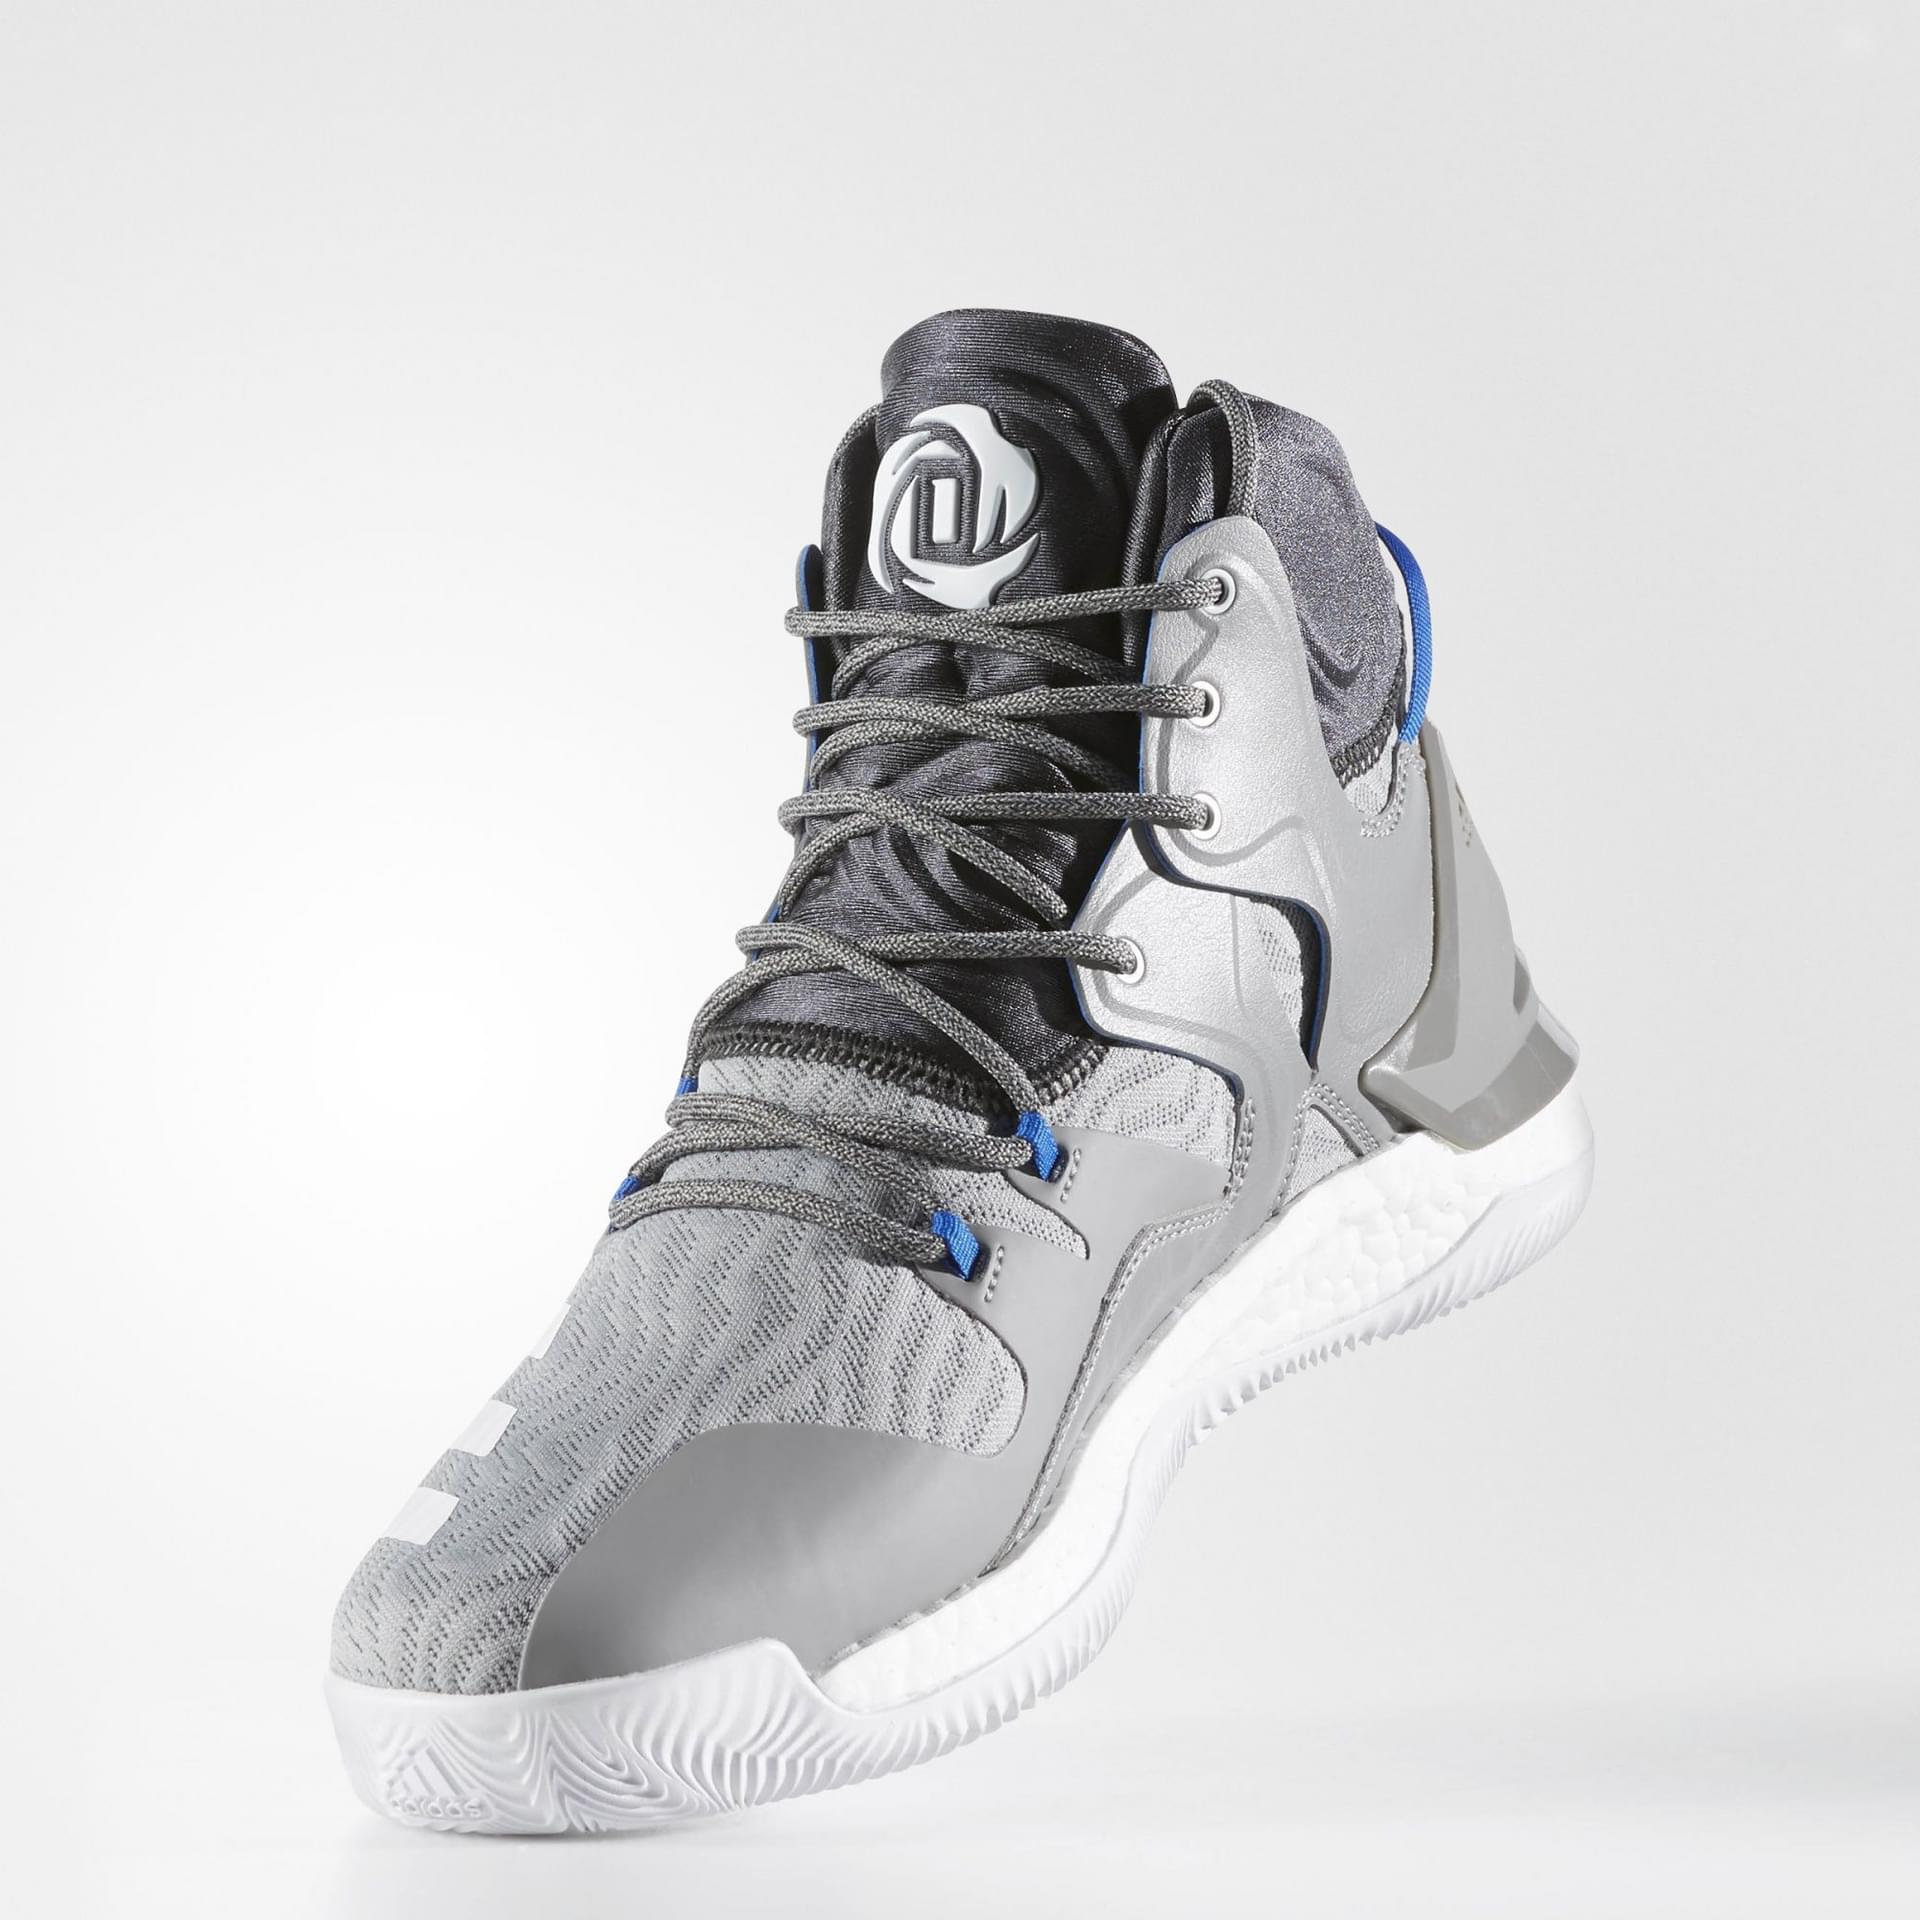 low price adidas d rose 7 grey white 3 8b88c 28a57  norway adidas d rose 7  primeknit mens a97e0 ac623 8ed296343